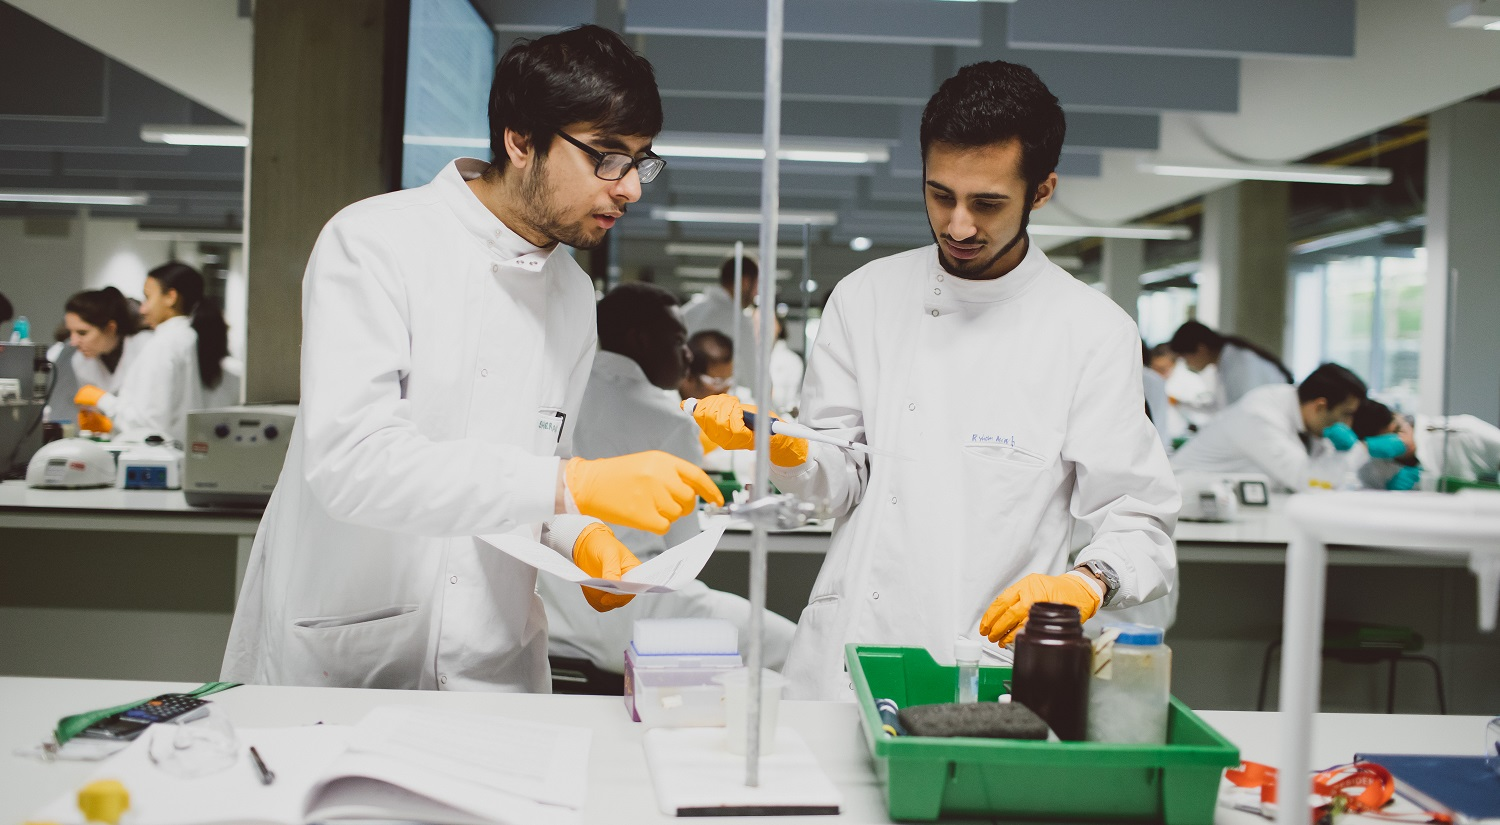 Two male students in white lab coats wearing yellow gloves. One holds a large pipette in his right hand, the other is holding a piece of paper and pointing towards something on the lab bench in front of them. A green plastic tray with bottles and jars is in the foreground.